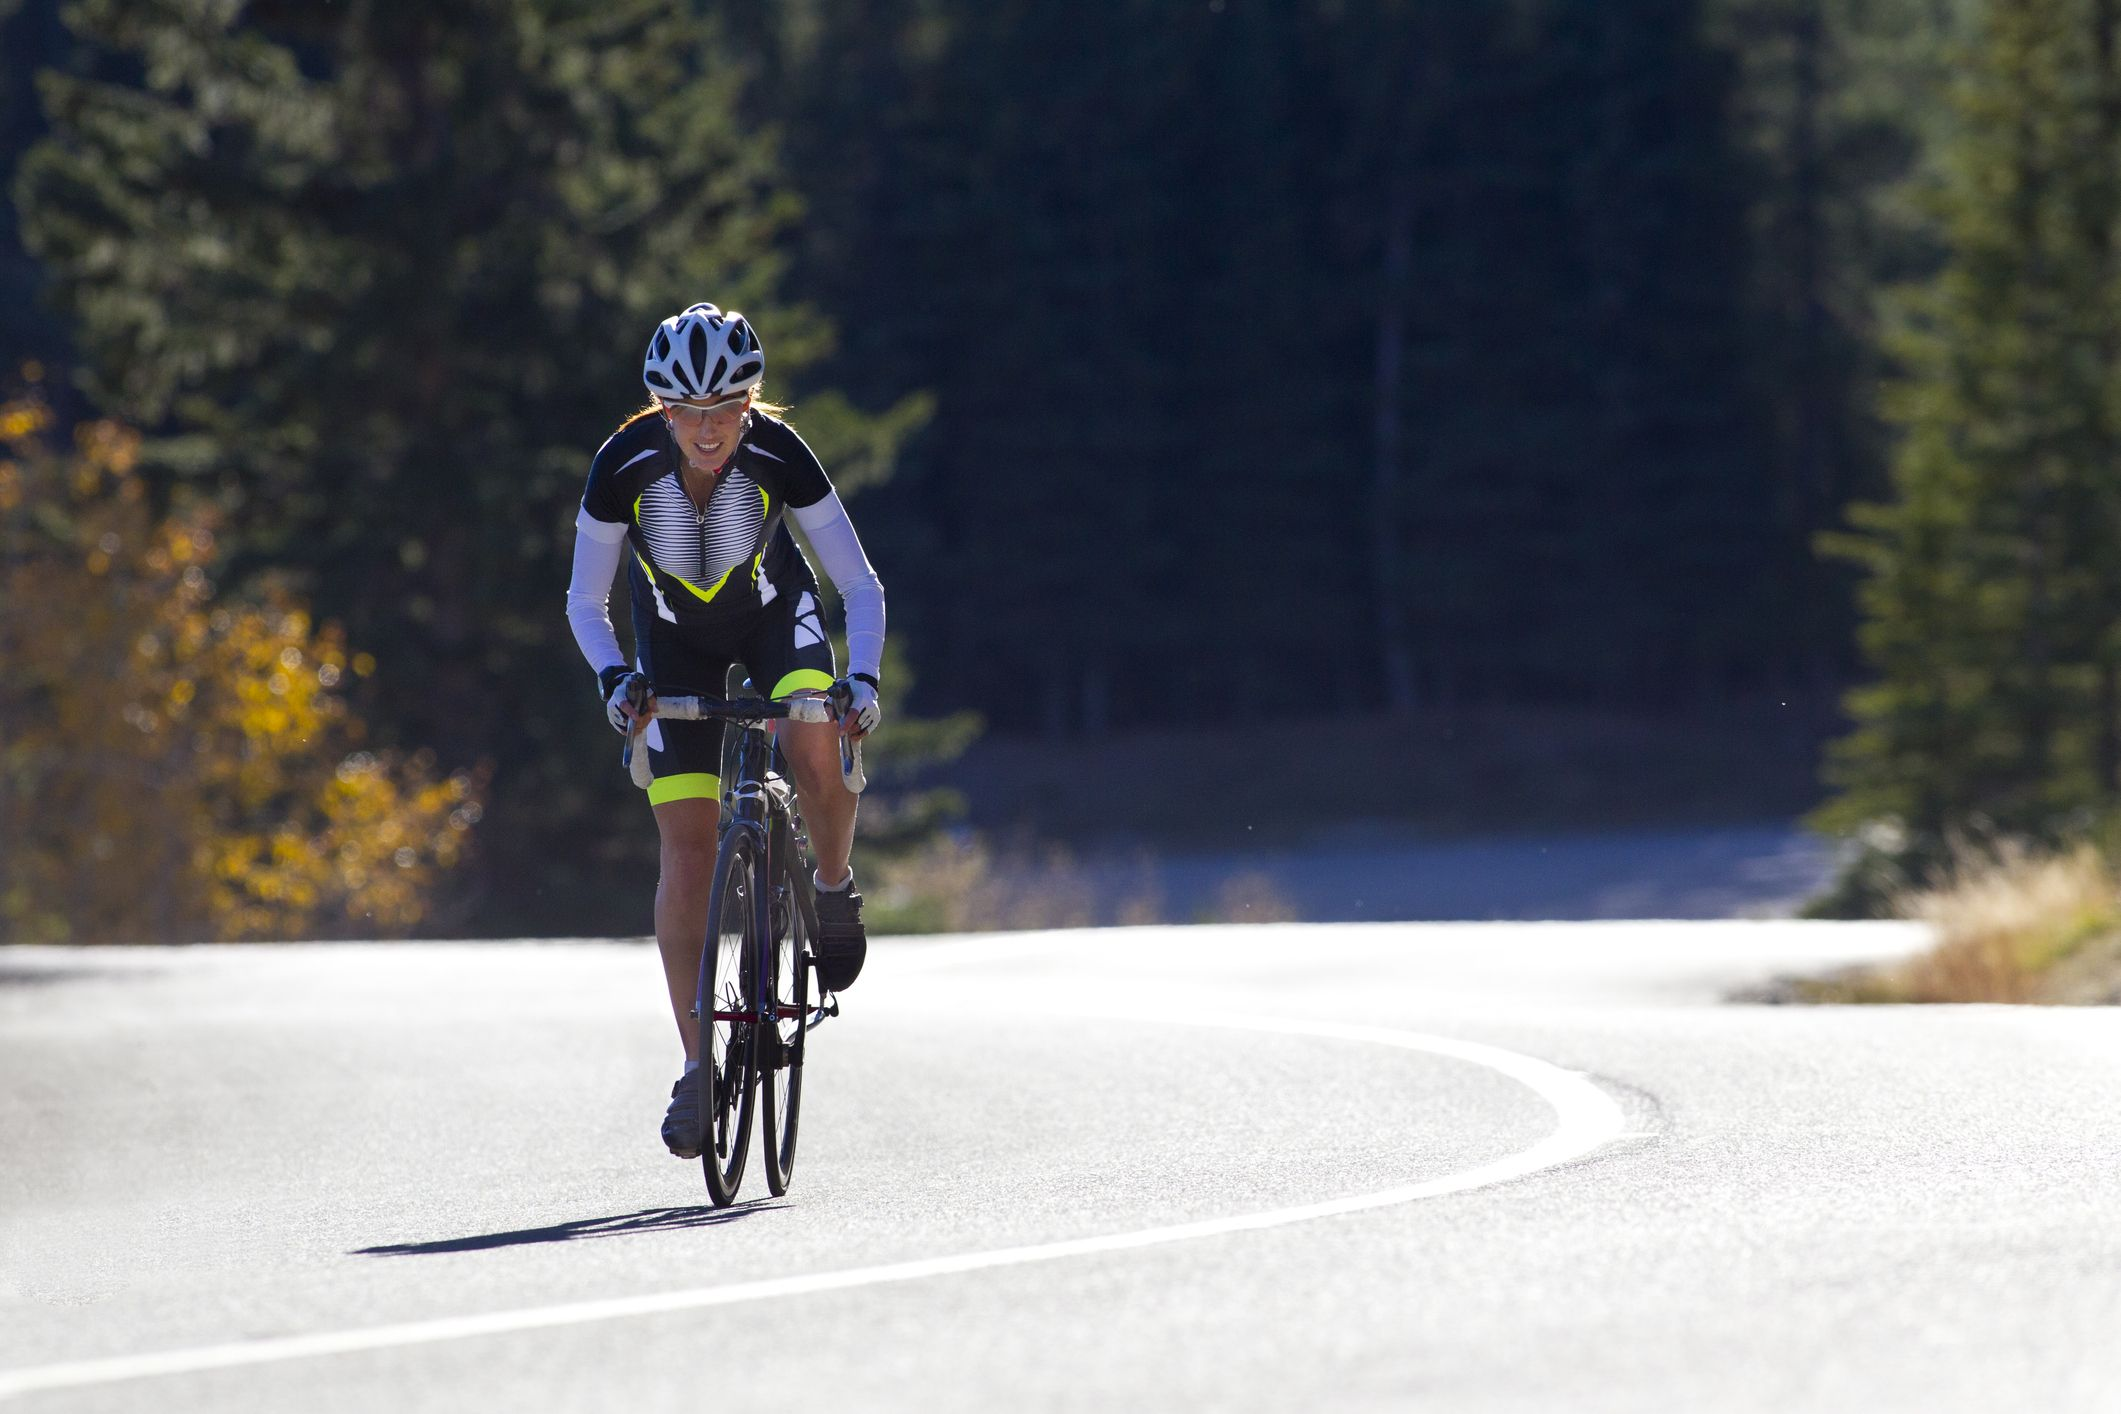 Interval Workouts For Cyclists Cycling To Improve Speed How Build A Regularly Repeating Timer